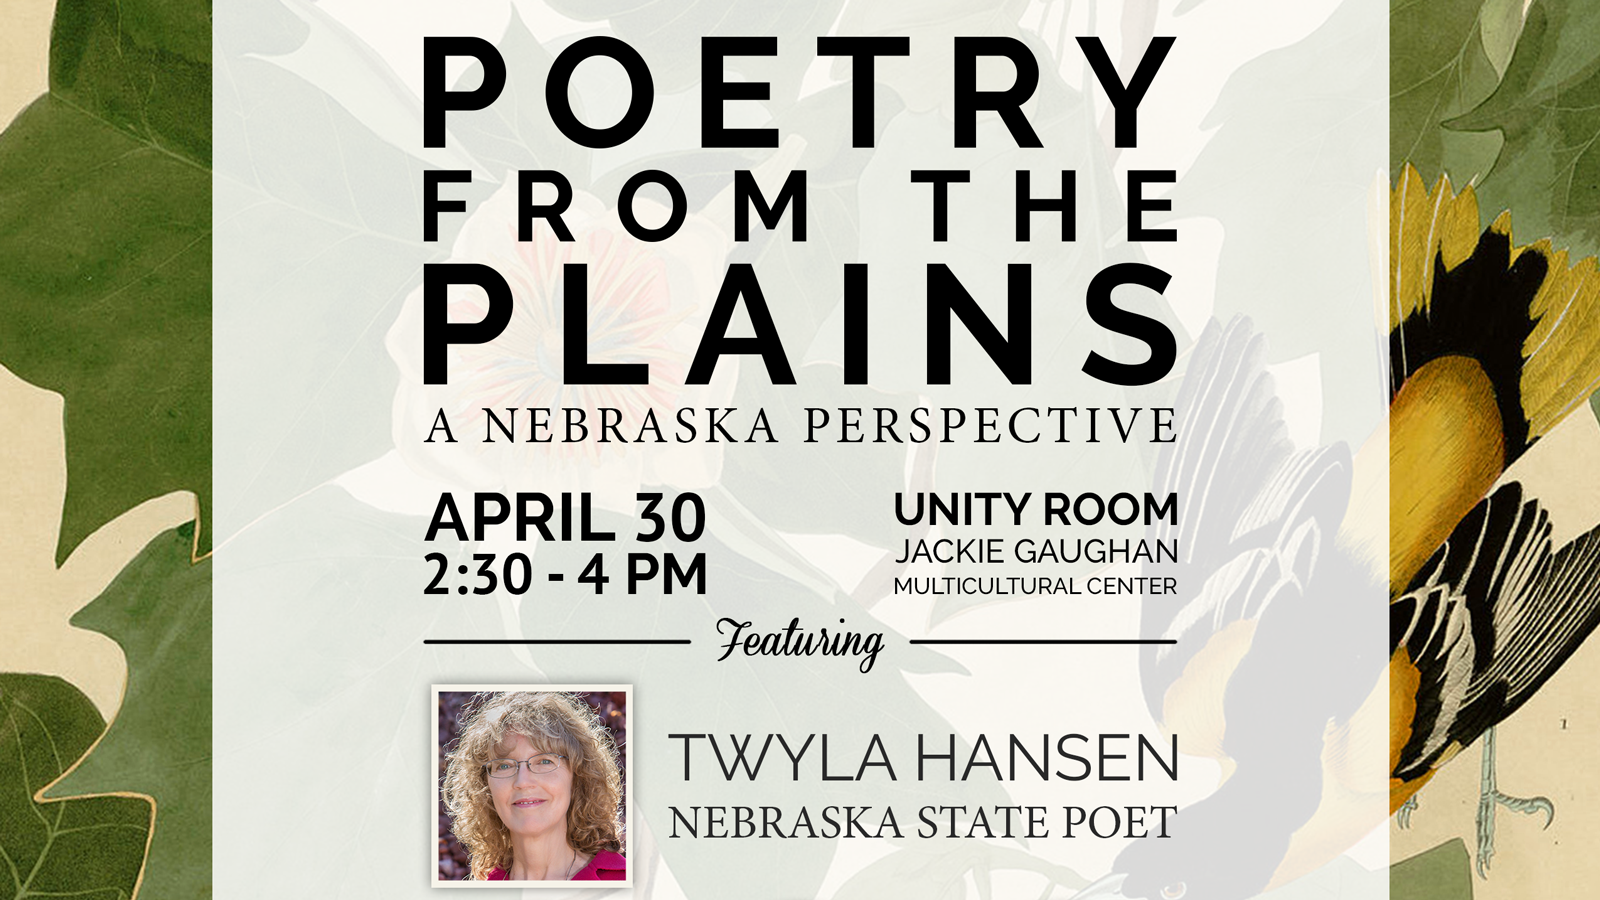 'Poetry from the Plains' Website Launches with April 30 Reading